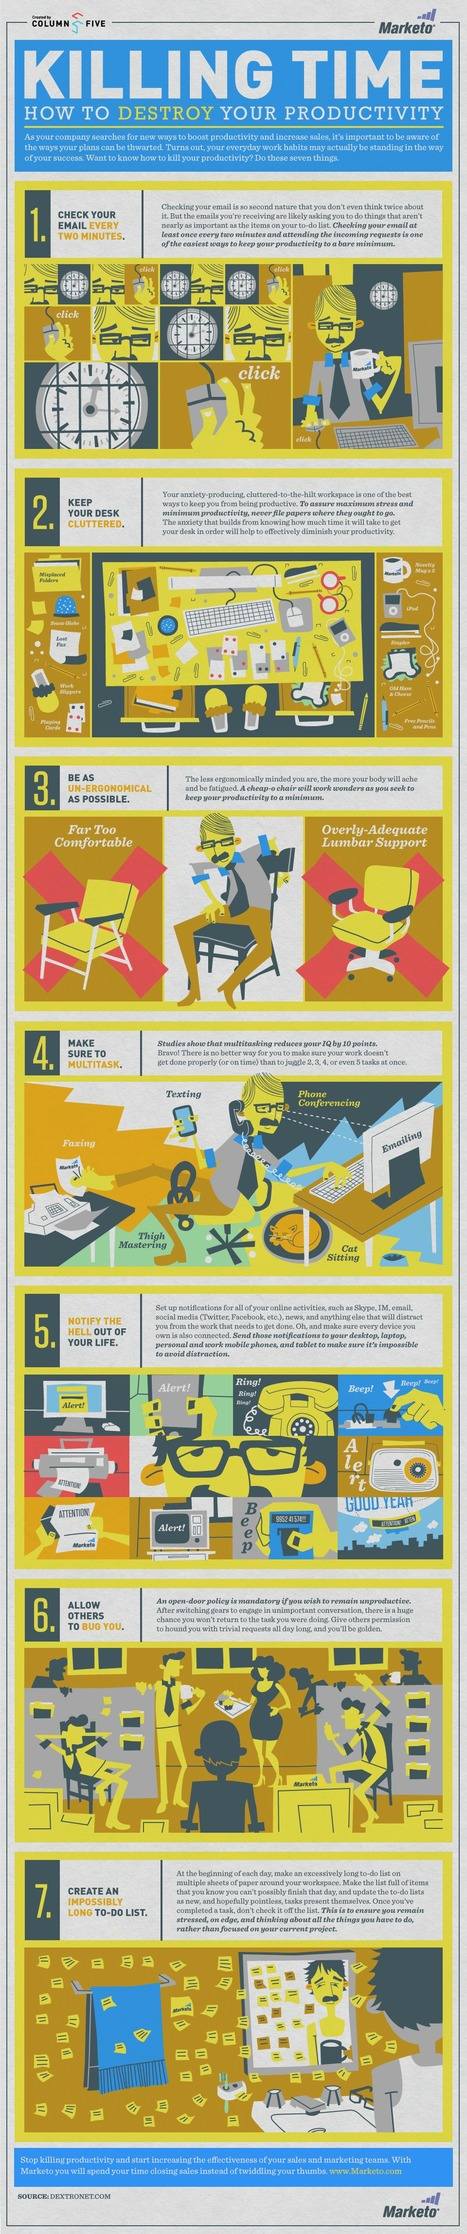 Killing Time: How to Destroy Your Productivity | Visual.ly | Infographics for English class | Scoop.it